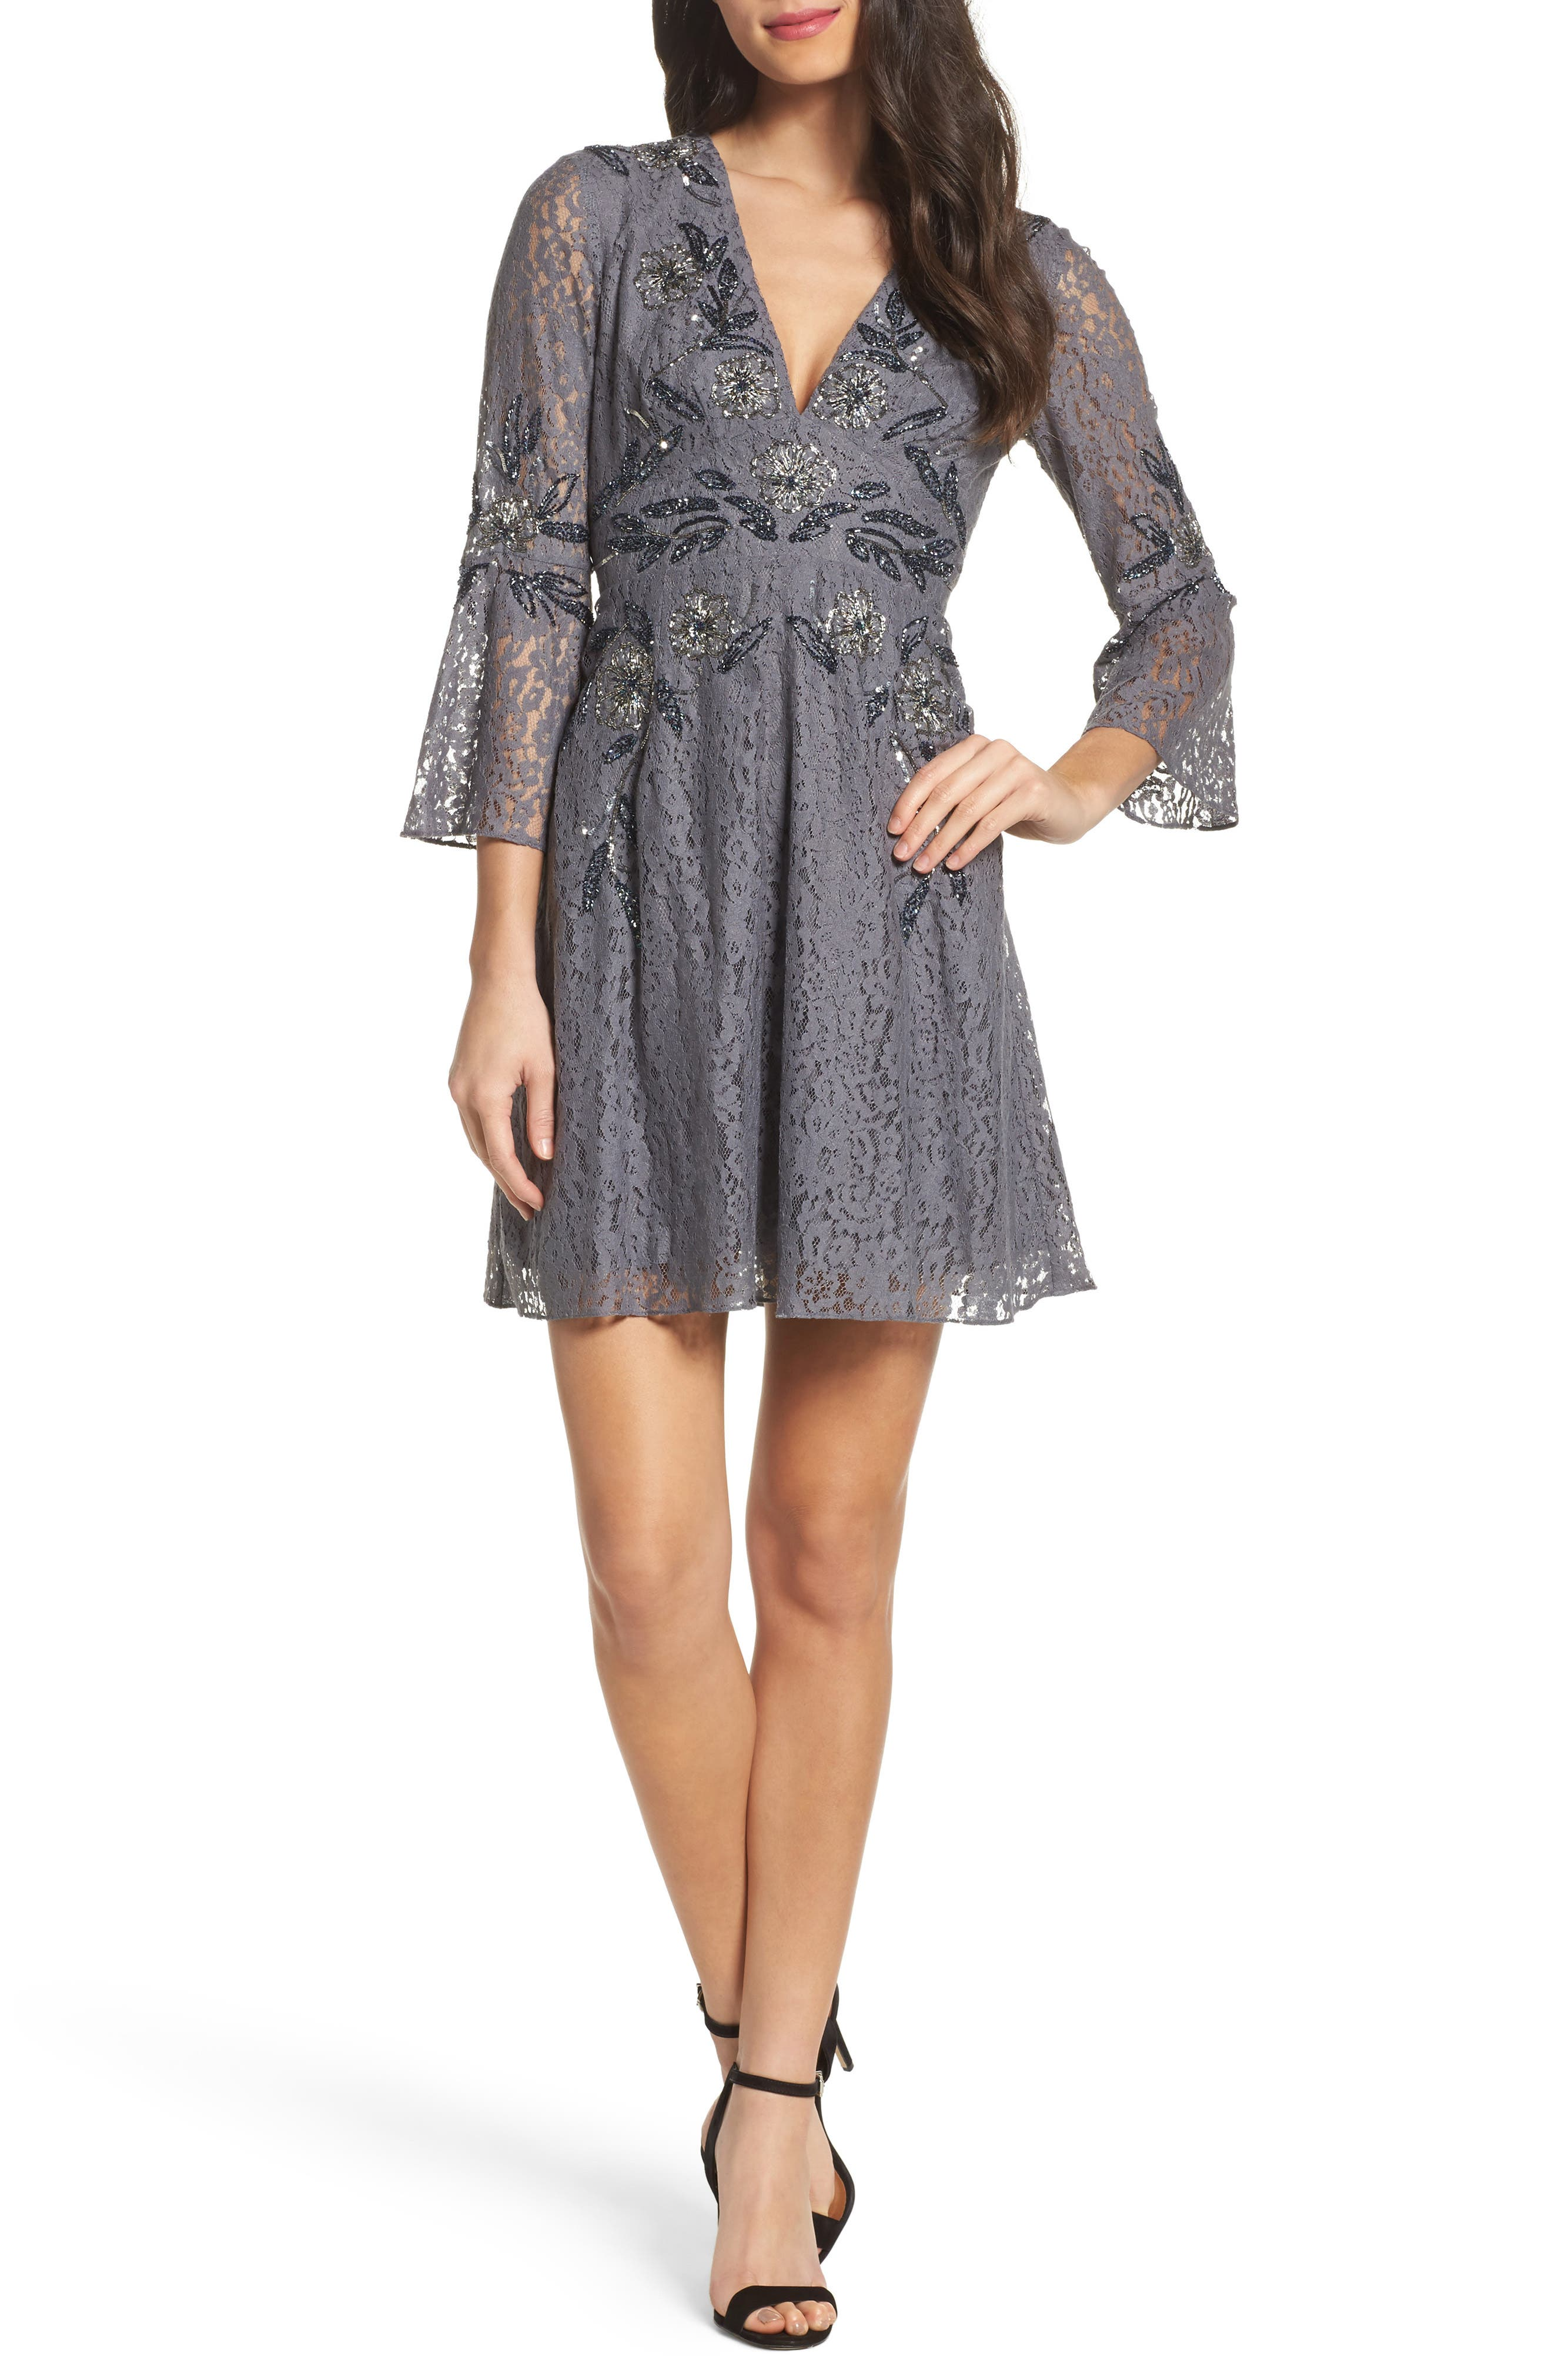 Esme Shimmer Beaded Lace Dress,                             Main thumbnail 1, color,                             024